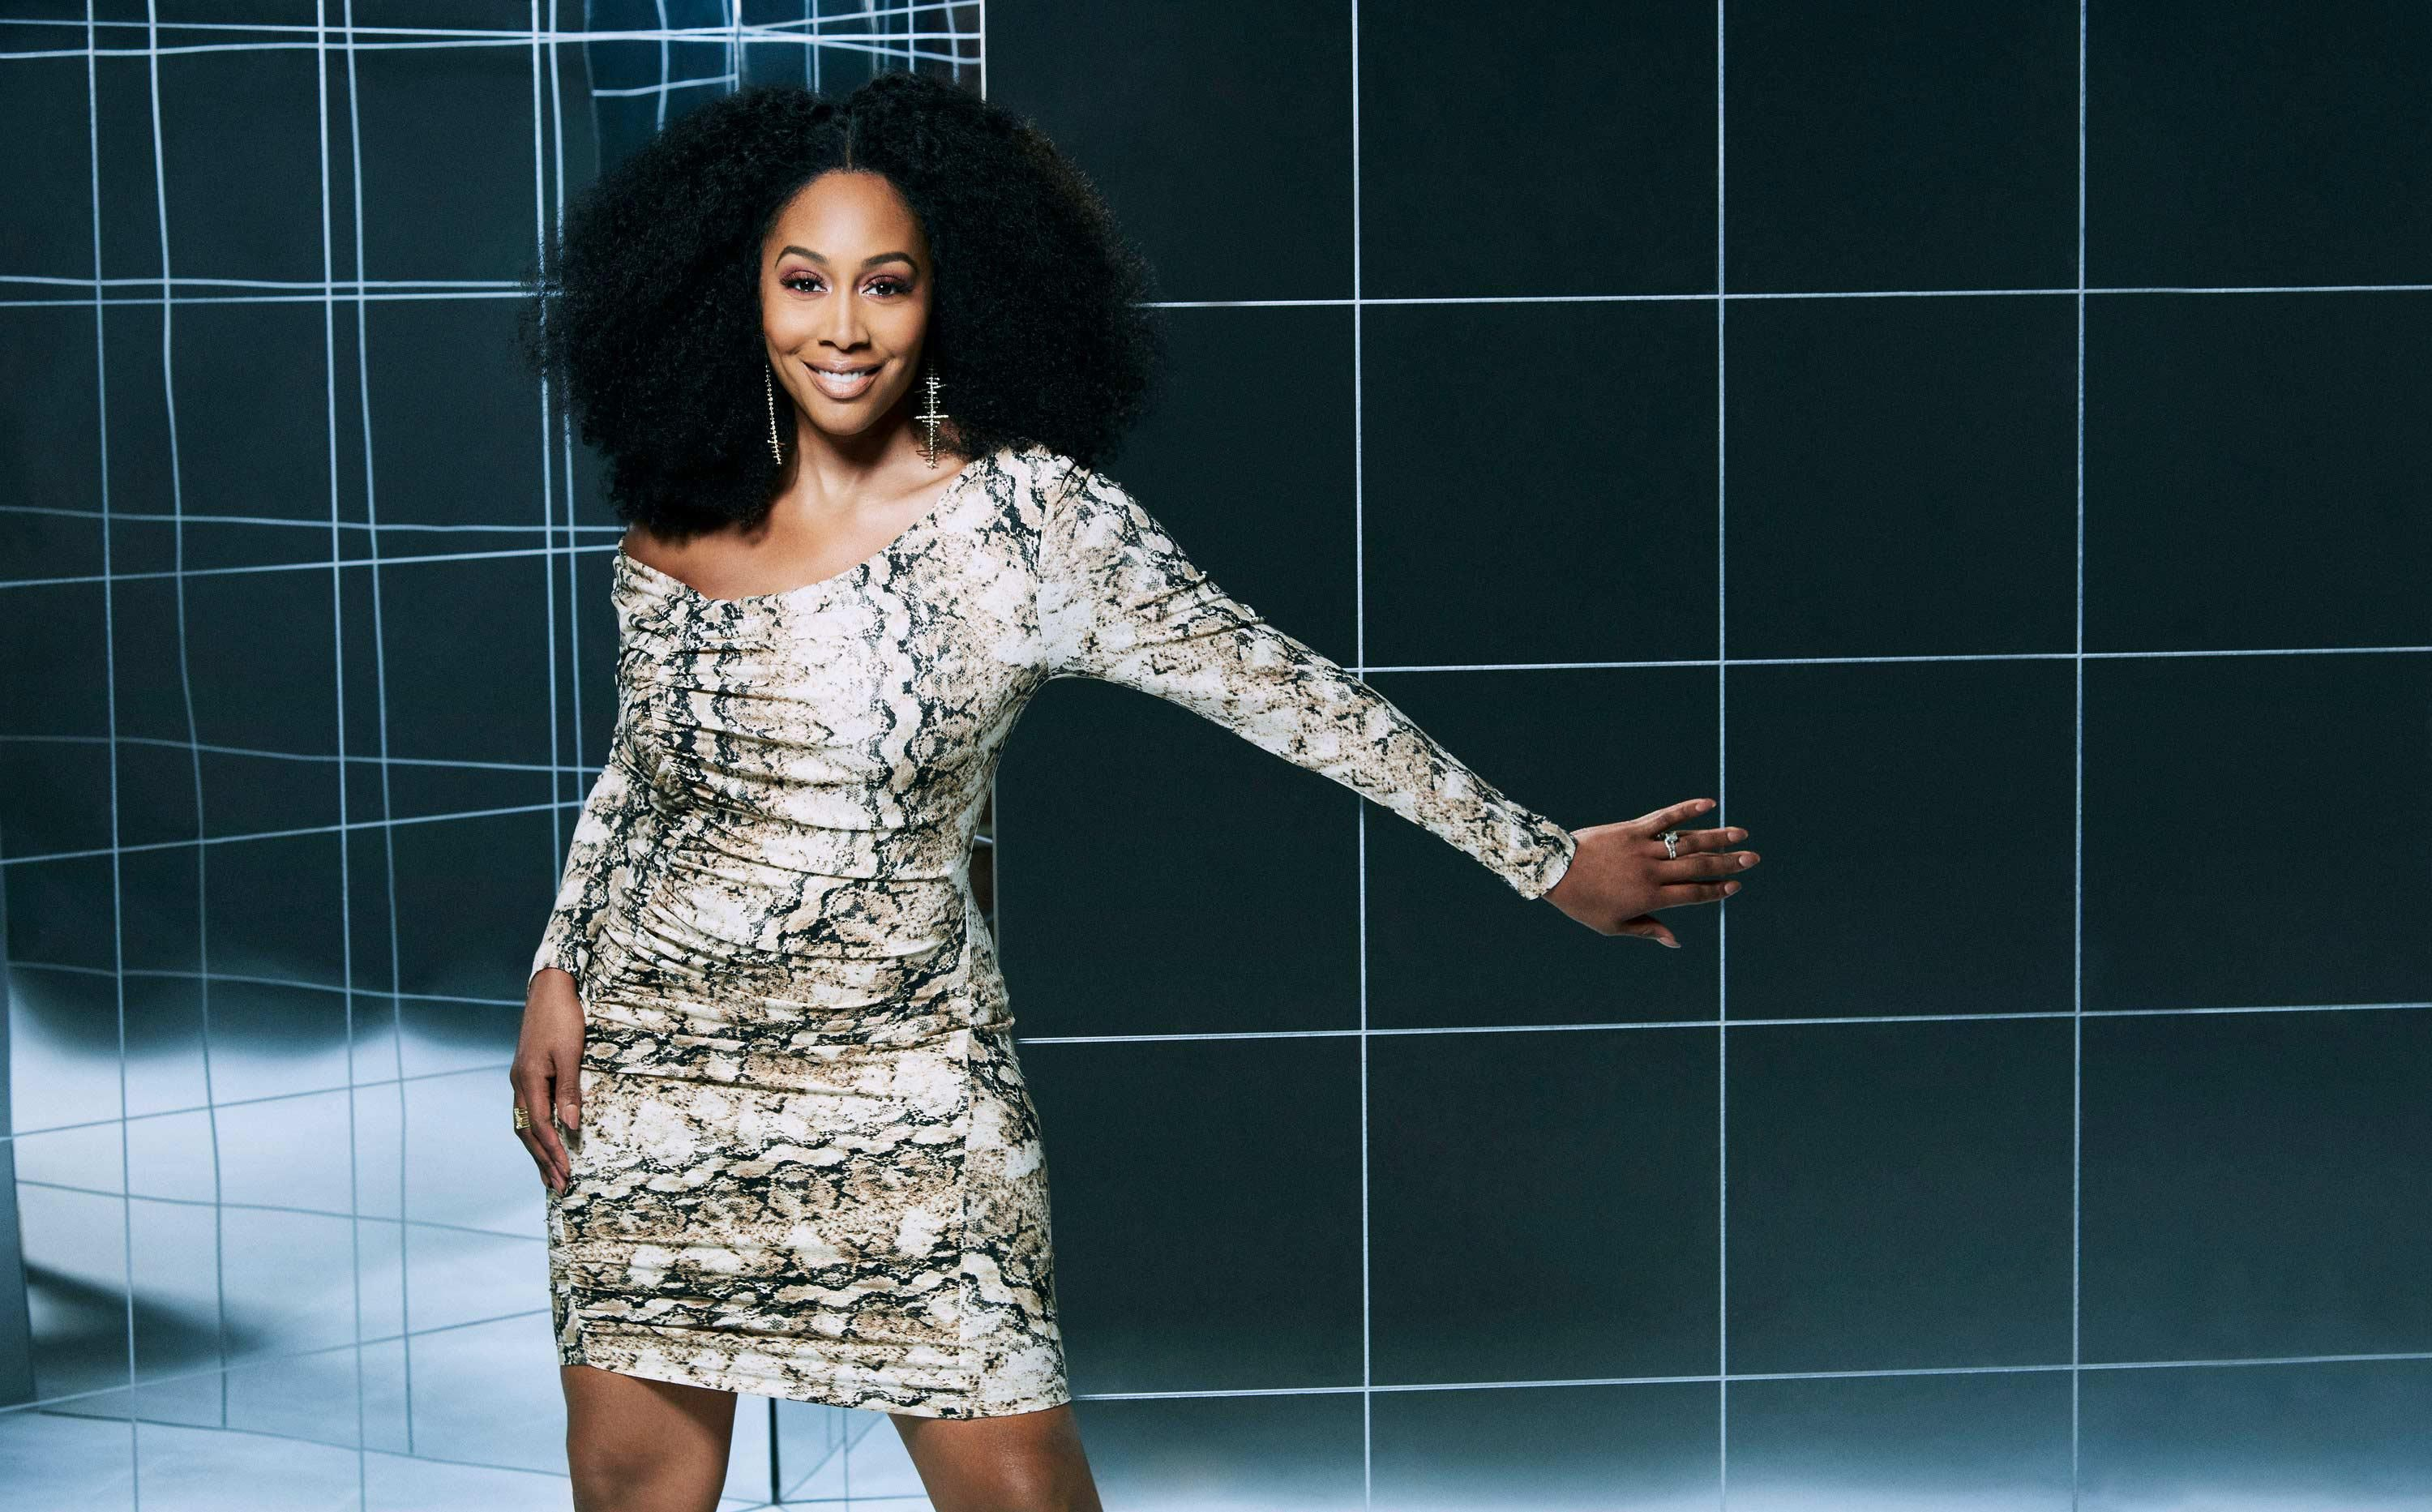 Simone Missick poses in a snakeskin-inspired mini dress